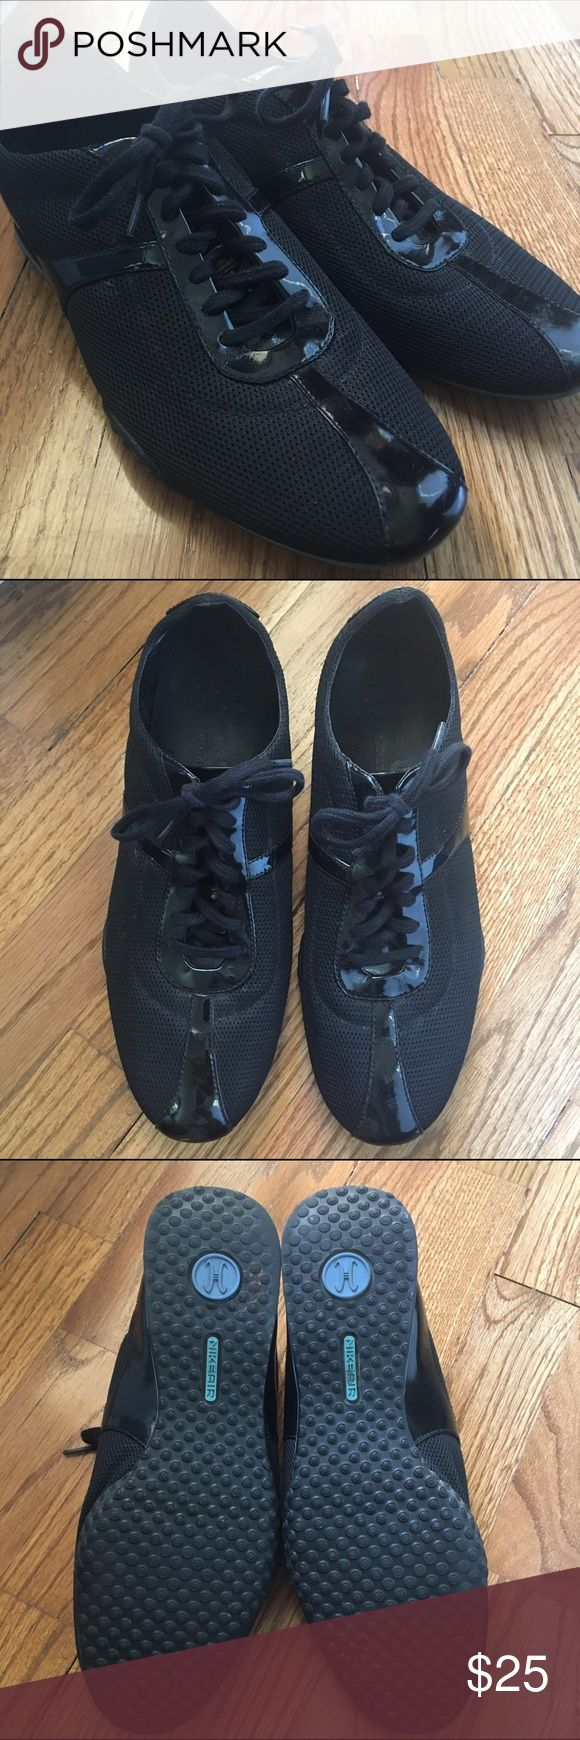 Cole Haan black tennis shoes Great condition! Cole Haans with Nike Air soles. Cole Haan Shoes Sneakers